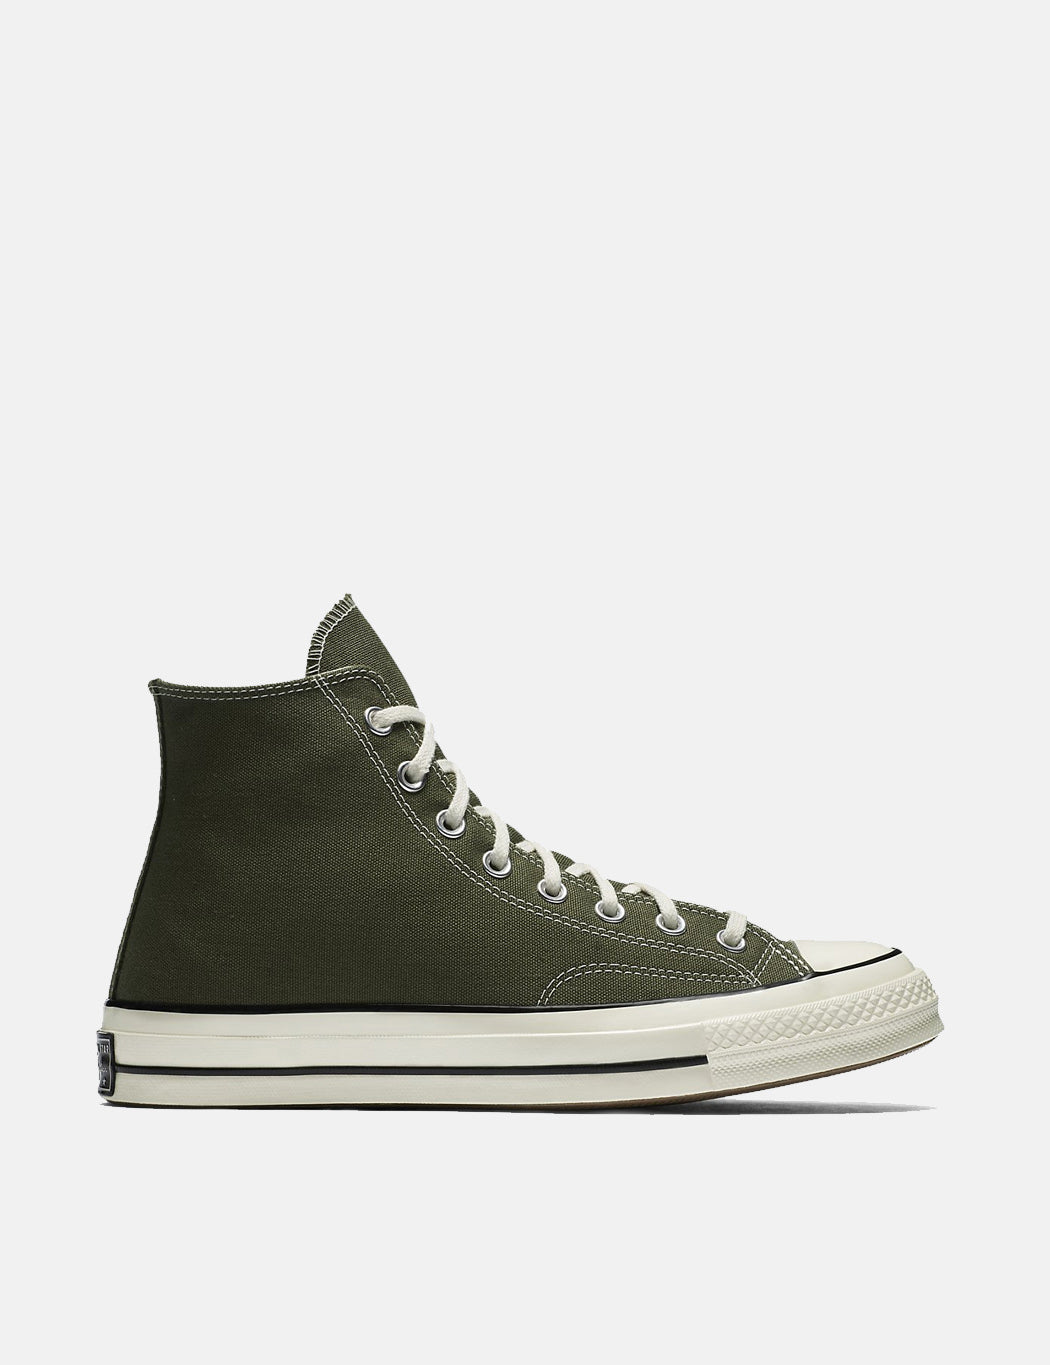 Converse 70's Chuck Hi 159771C (Canvas) - Herbal Green/Black/Egret